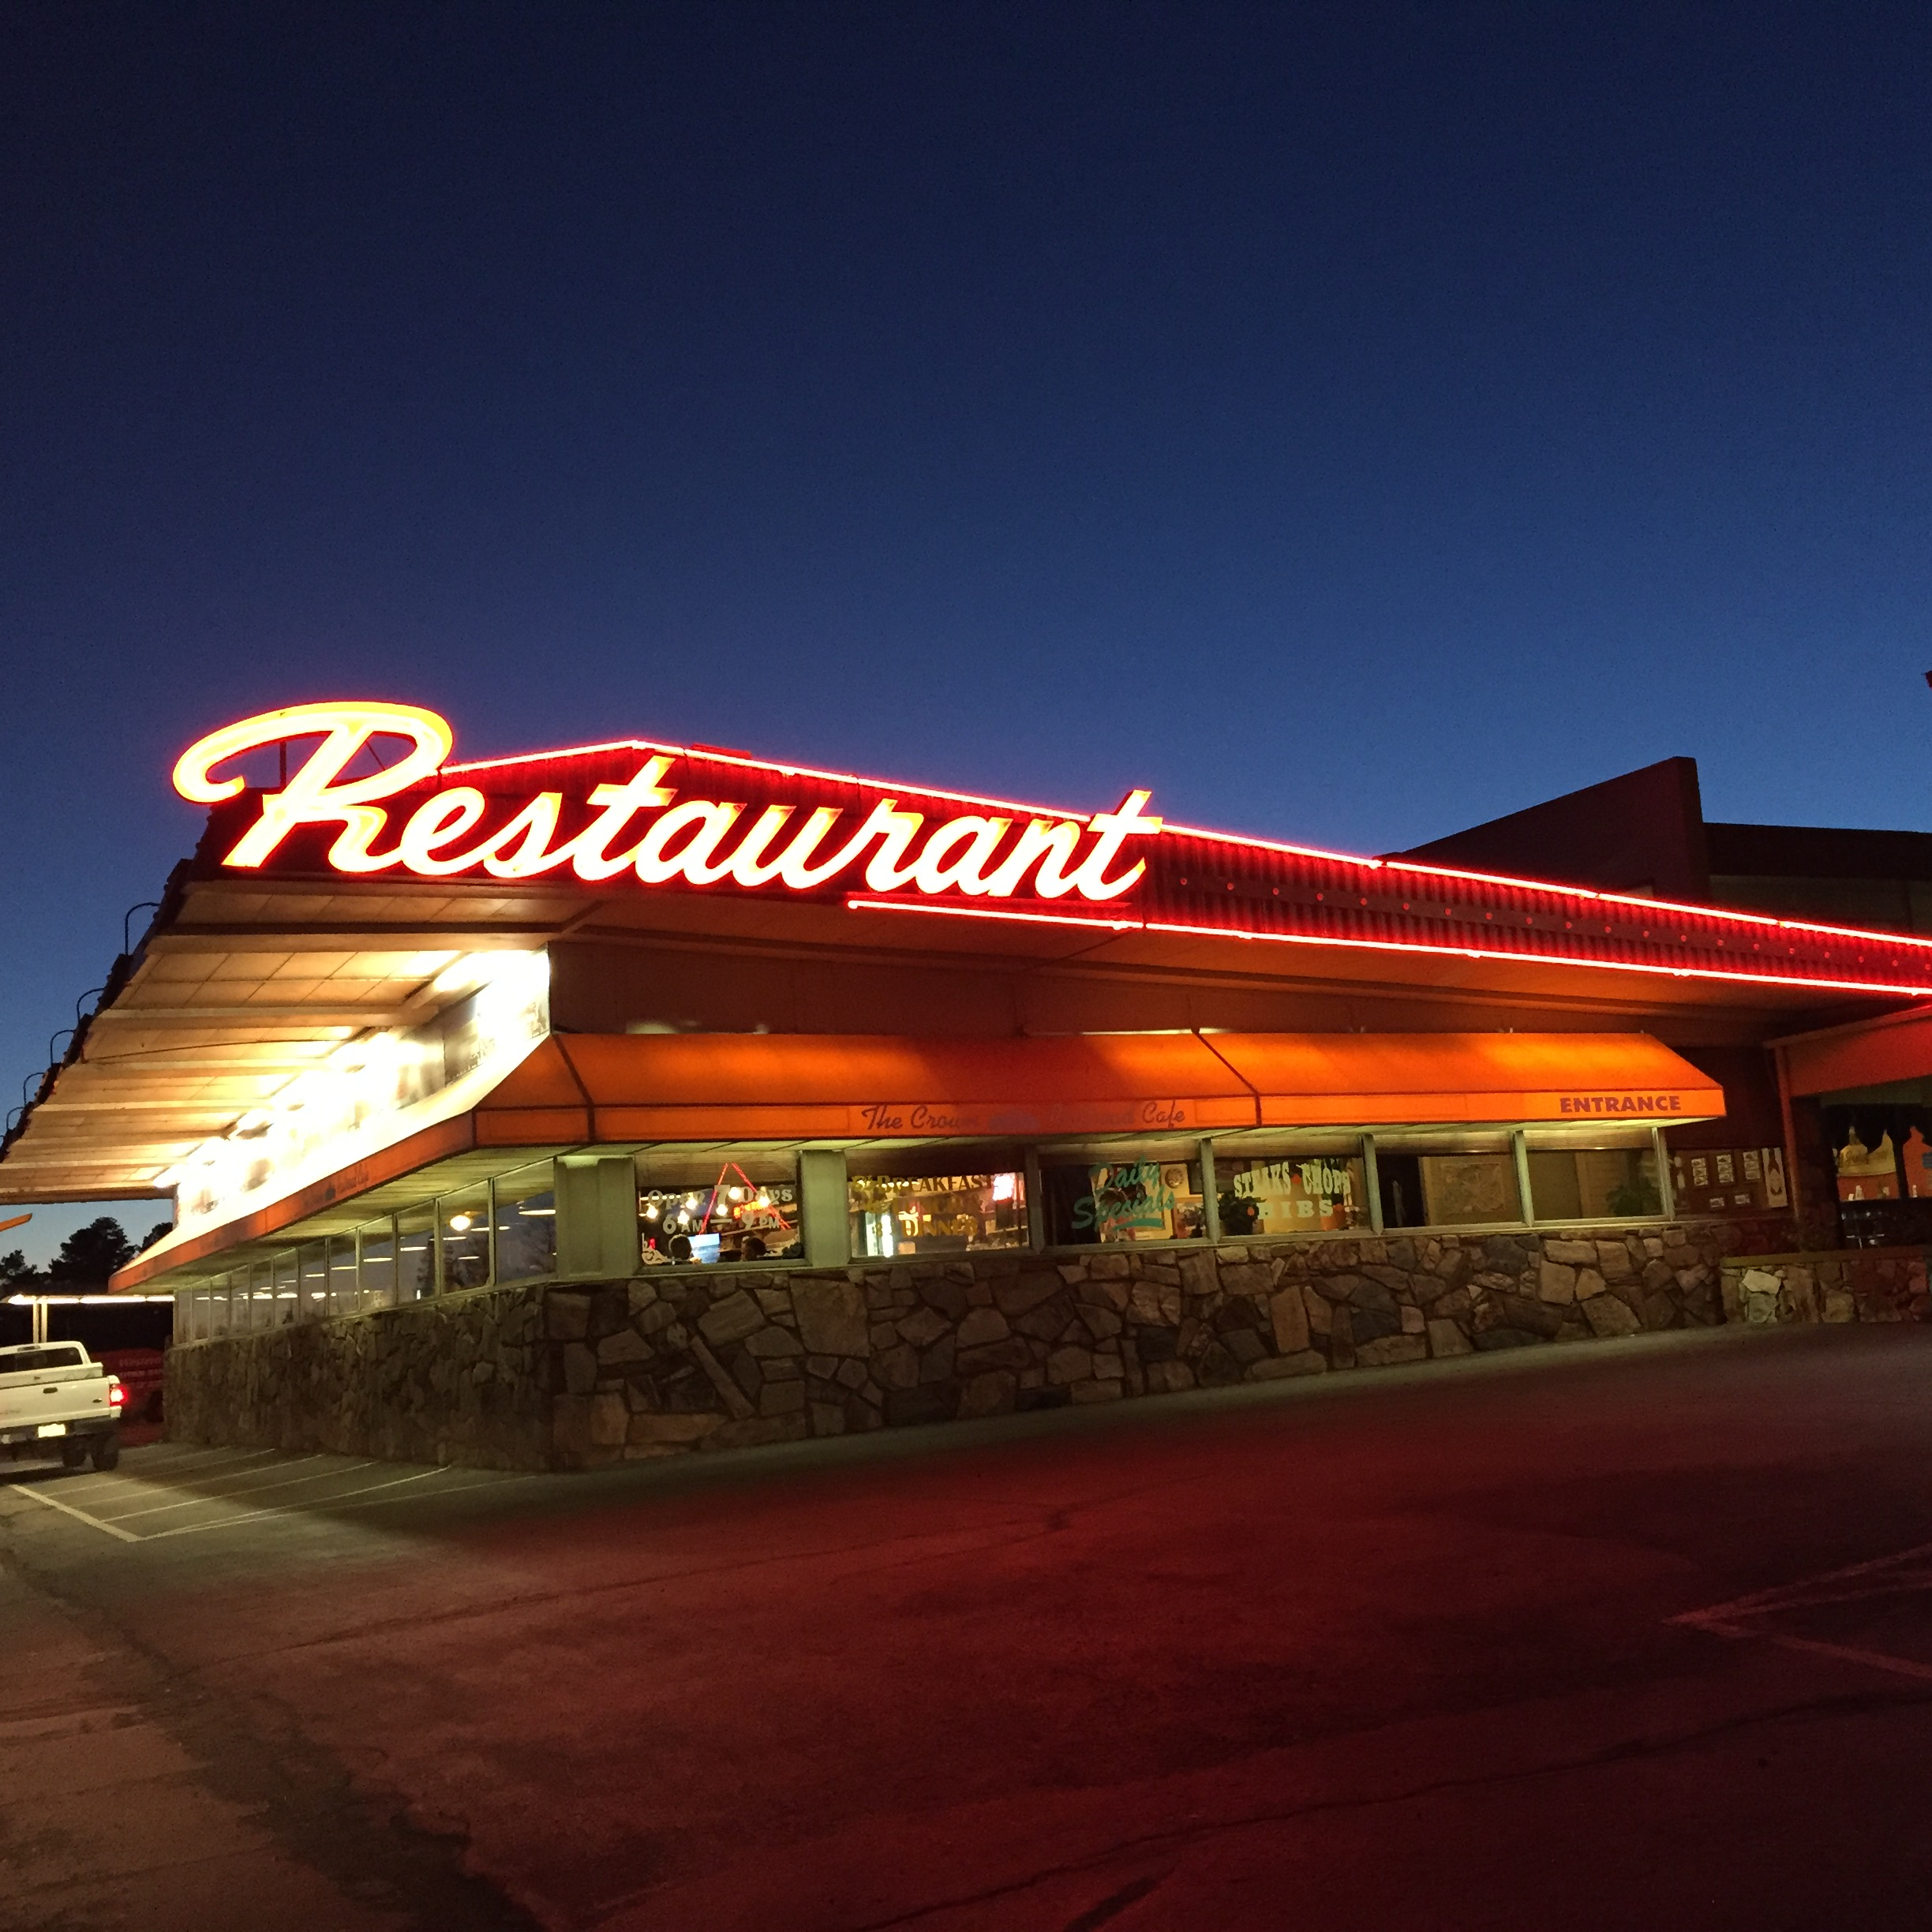 F Rt 66 neon Restaurant sign